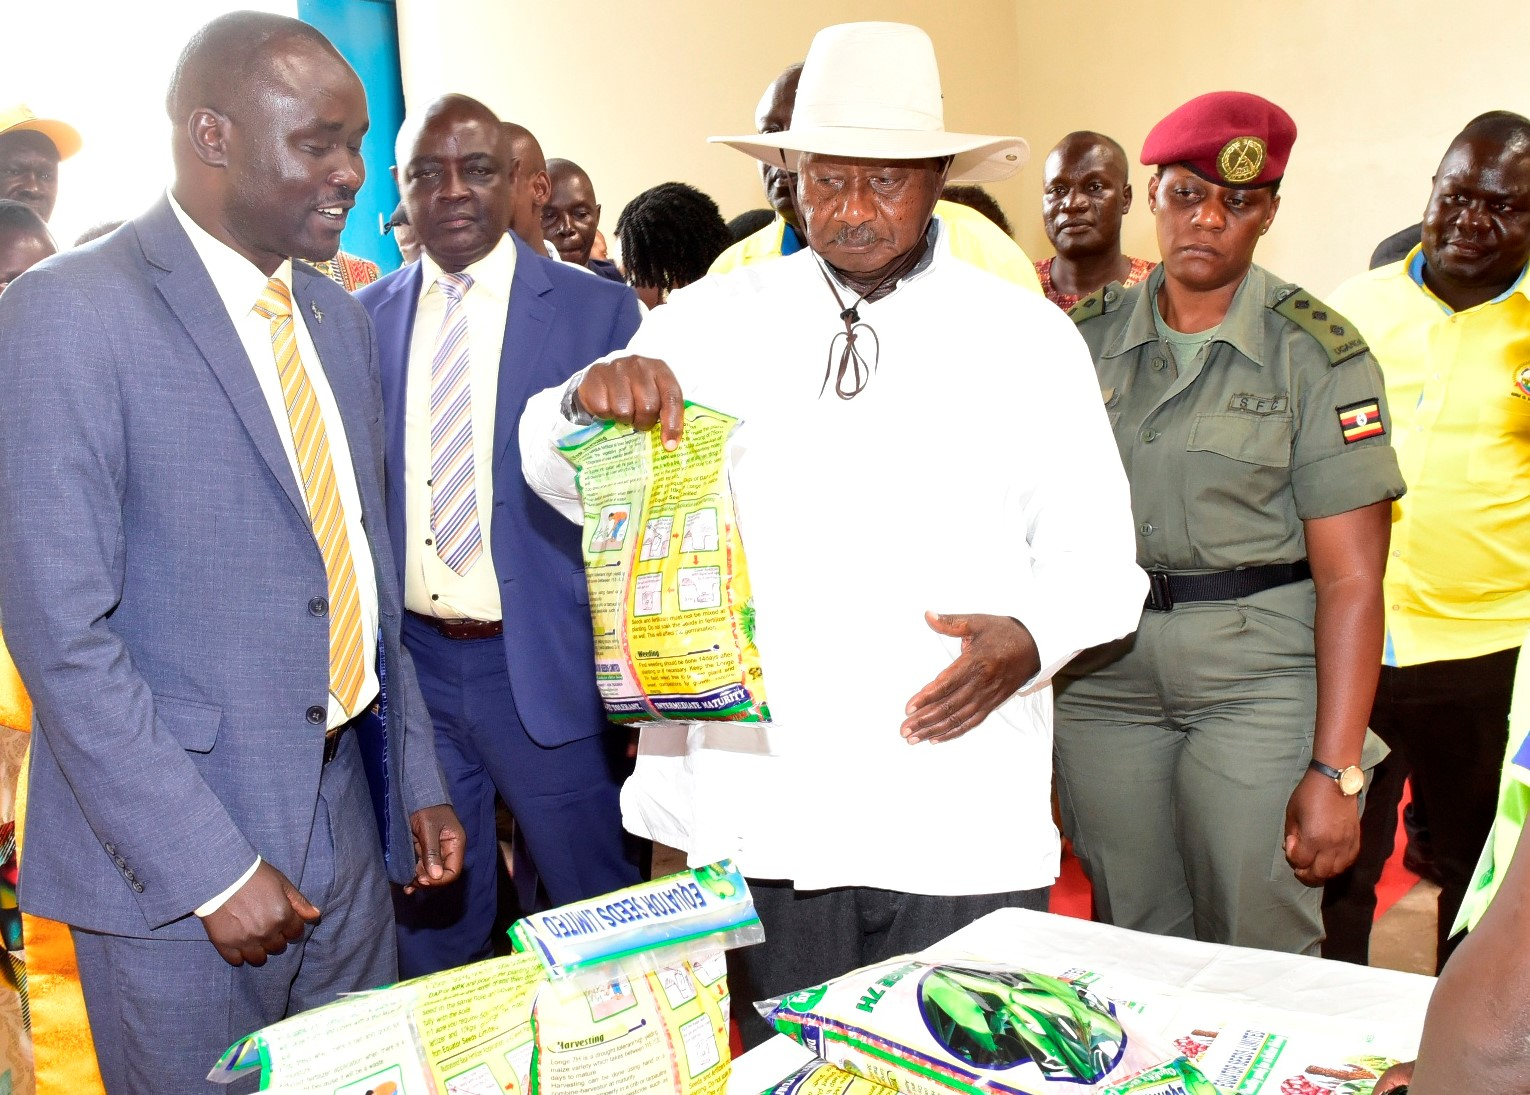 HE-HOLDING-THE-PARKET-OF-THE-SEEDS-FROM-THE-SEEDS-FACTORY